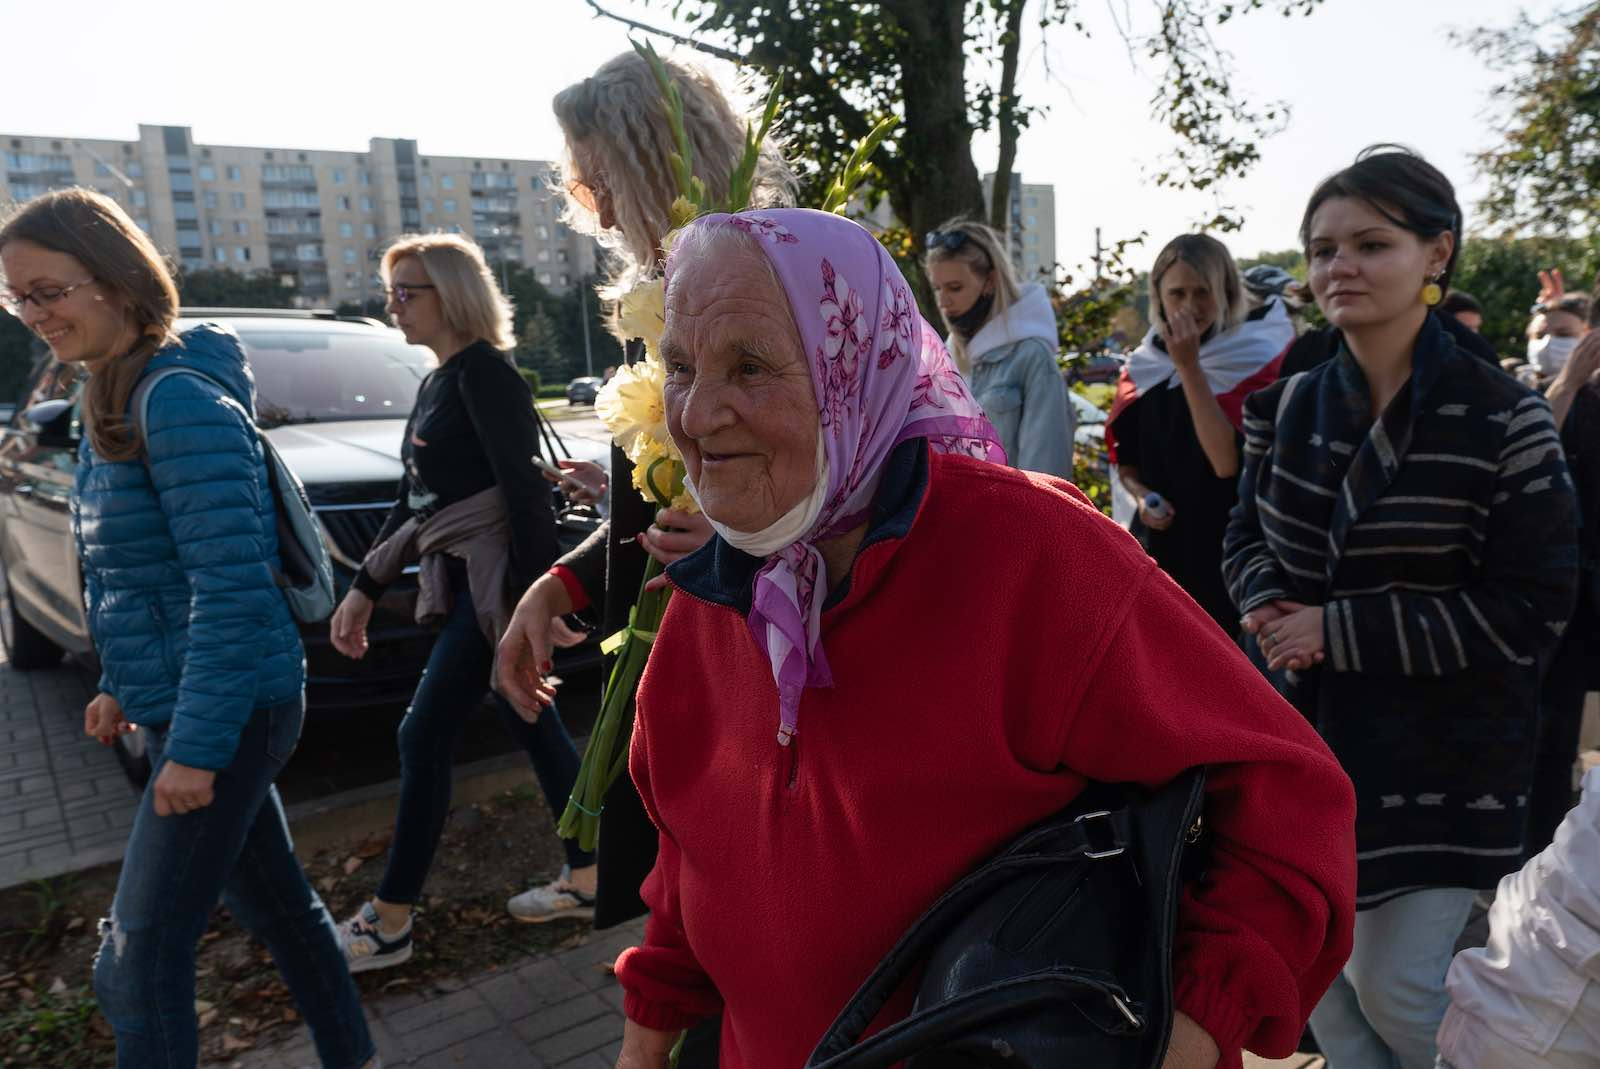 A elderly woman marches in a protest against the continued rule of president Alexander Lukashenko, 19 September 2020 in Minsk, Belarus (Jonny Pickup/Getty Images)